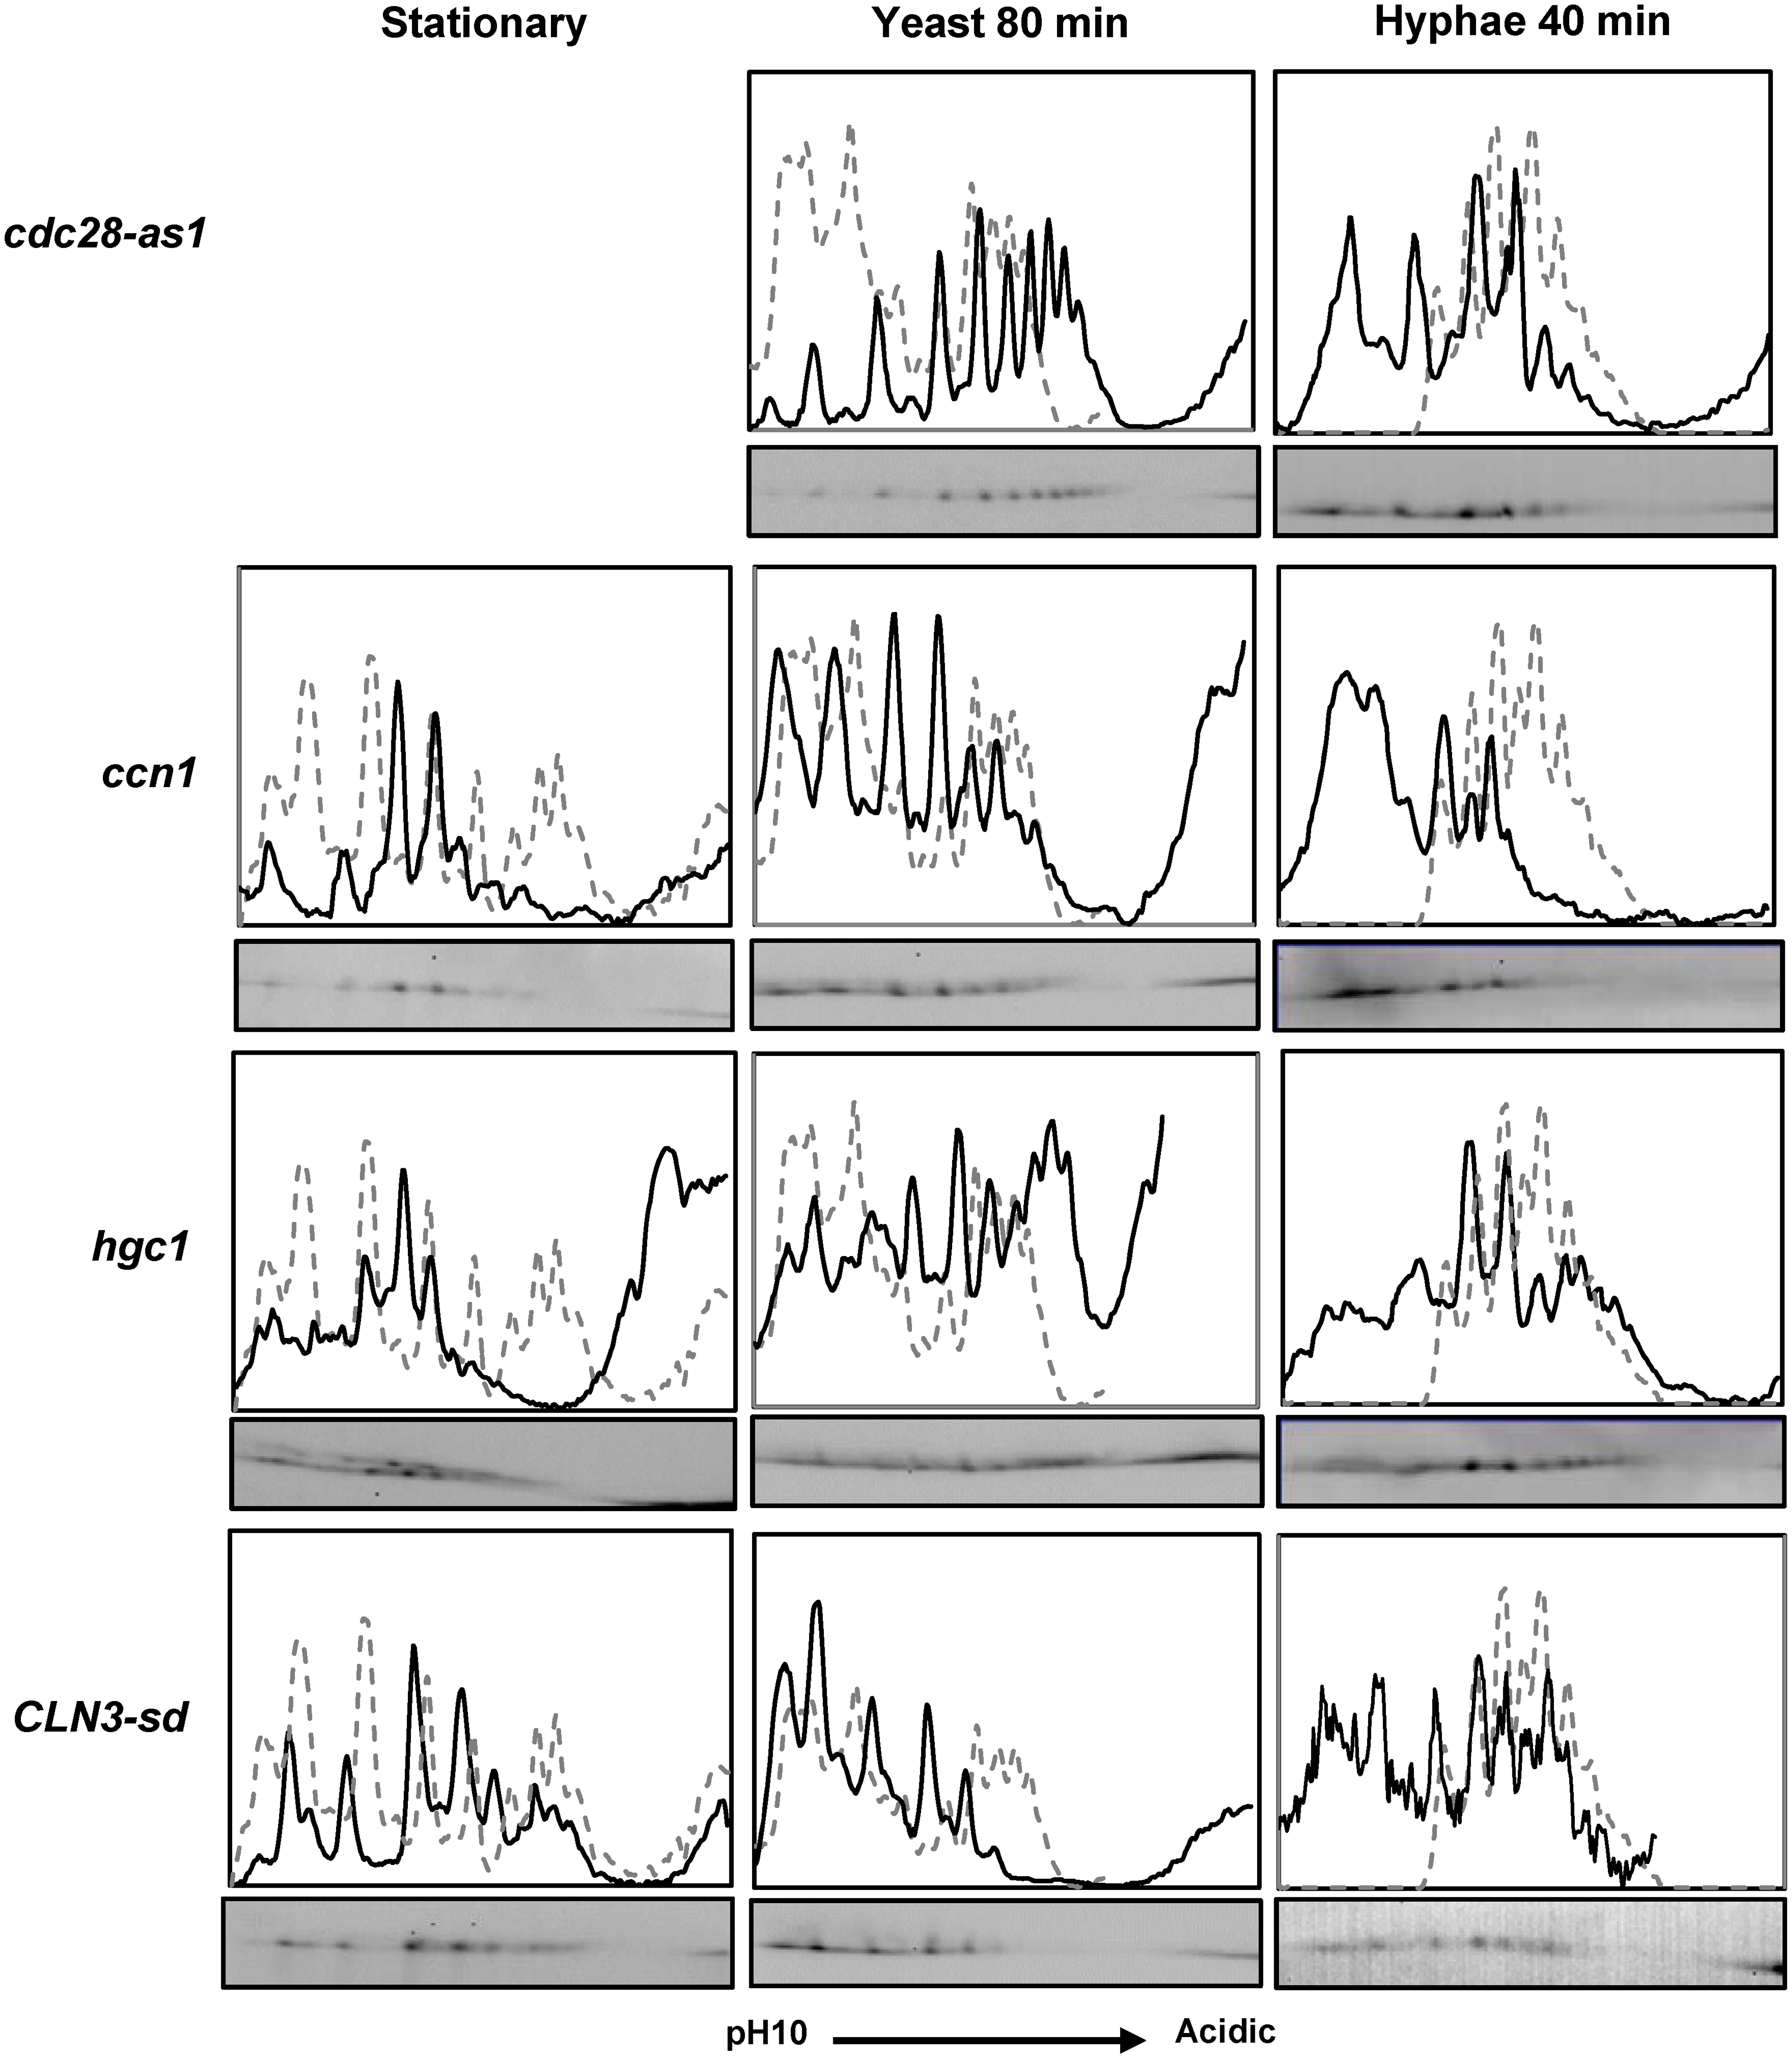 The effect of inhibiting Cdc28 or the removal of Cdc28 cyclins on Fkh2 phosphorylation.